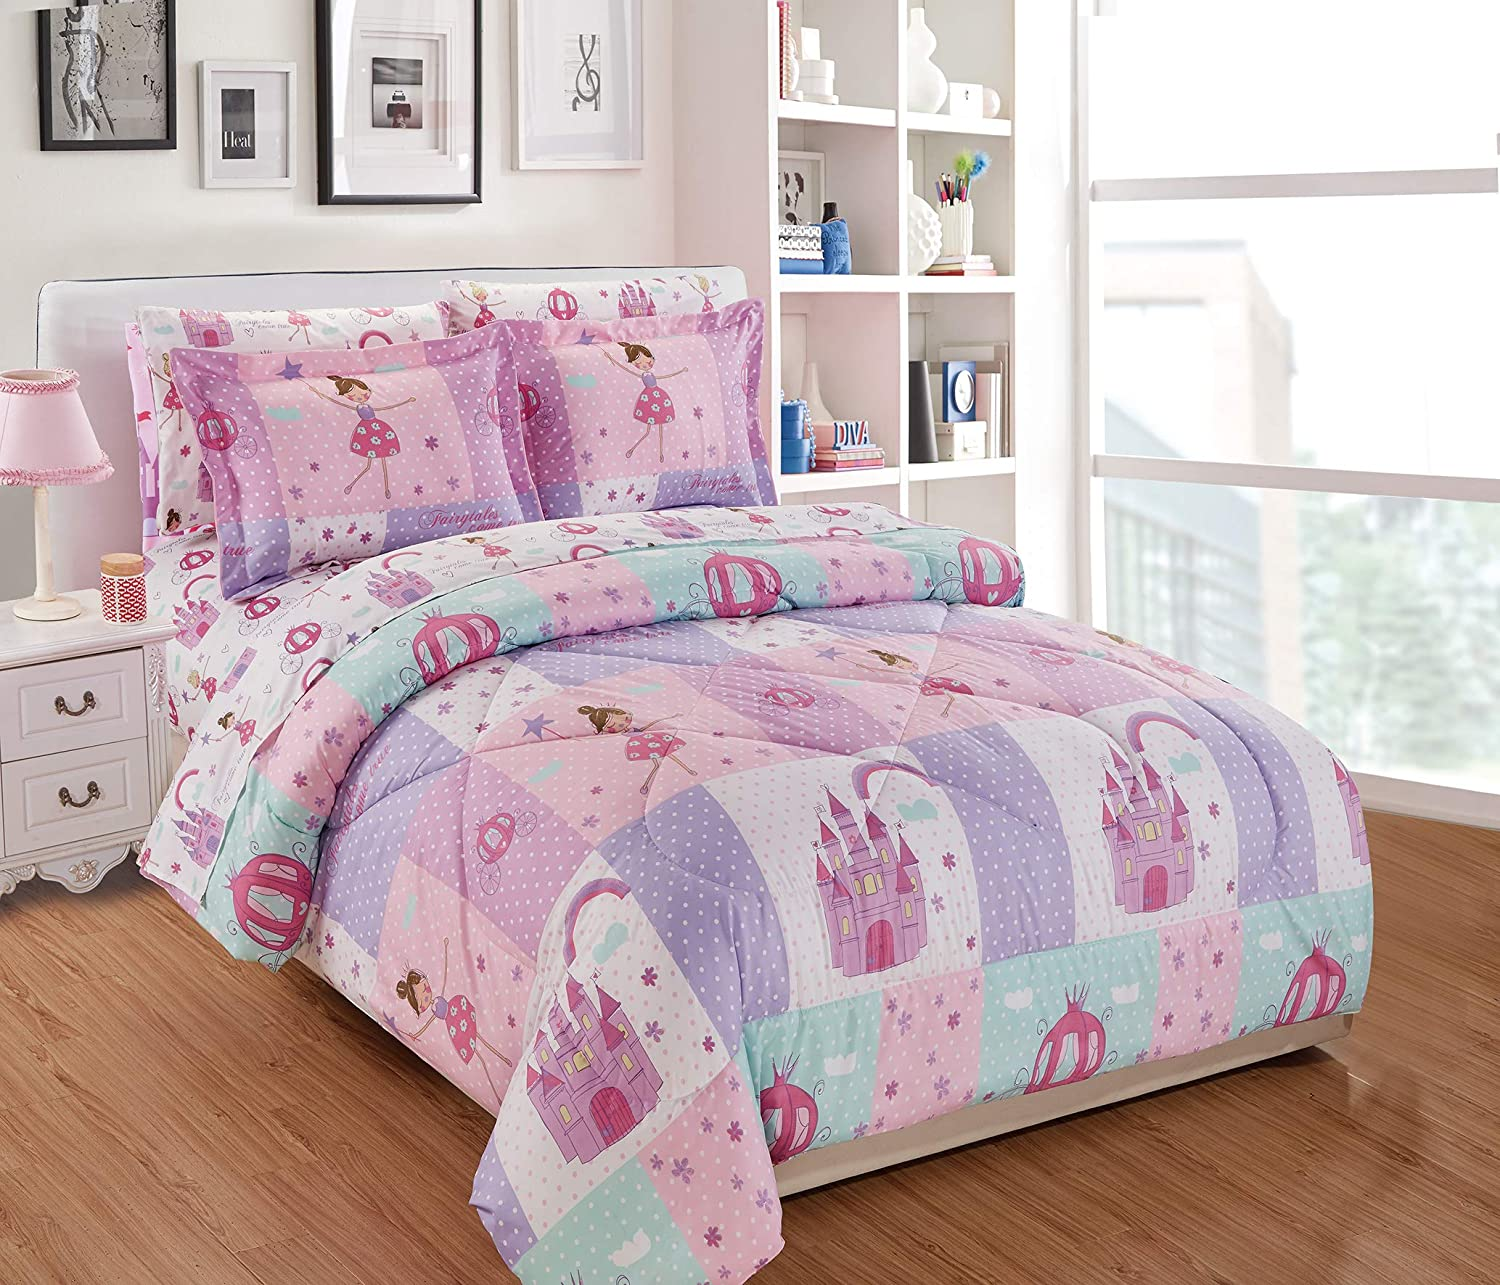 Mk Home 7pc Queen Comforter Set for Girls Princess Fairy Tales Castles Pink White Lavender New